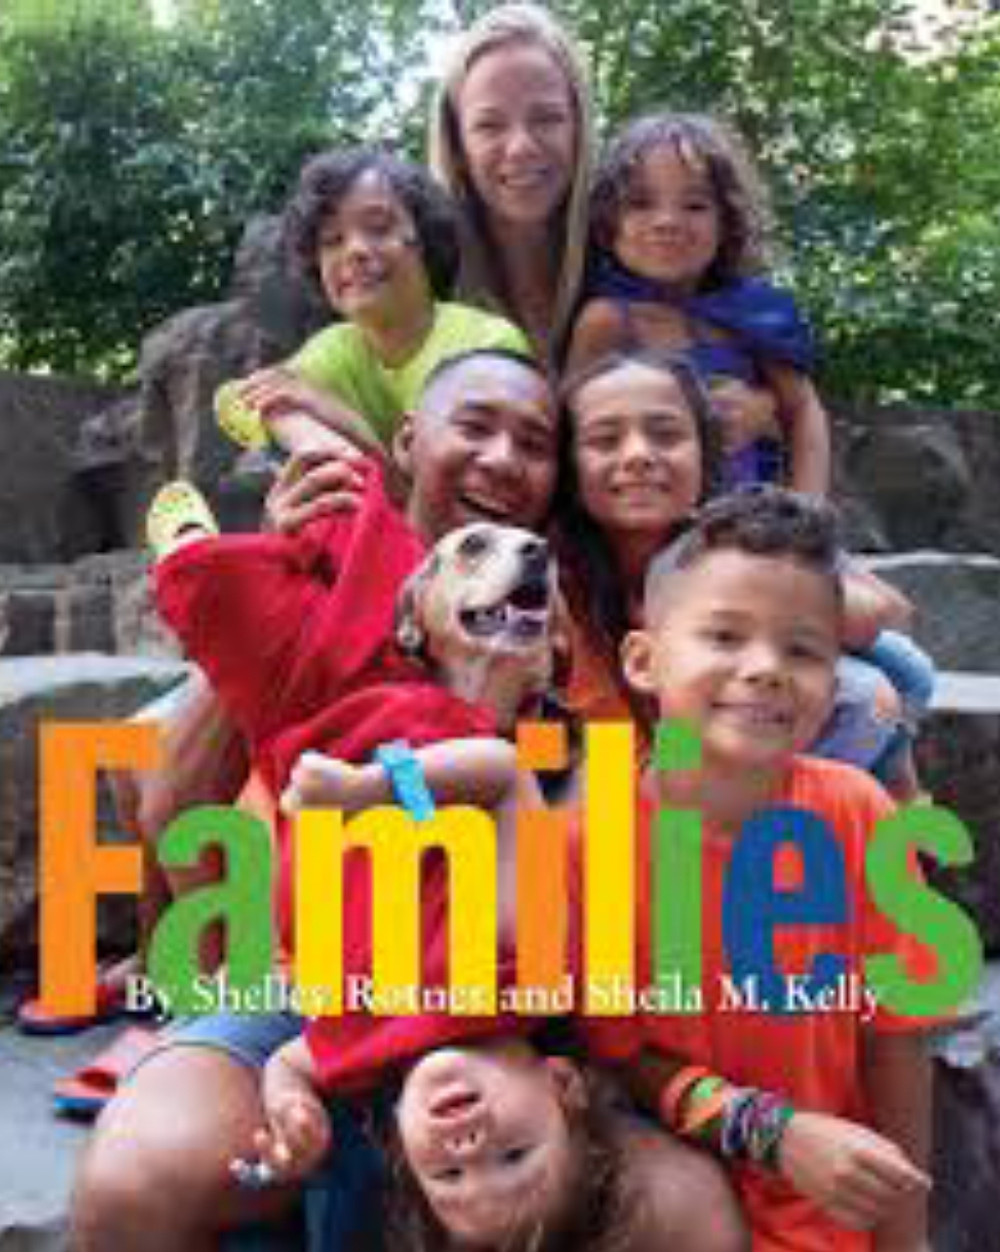 Children's Books for Diverse Families